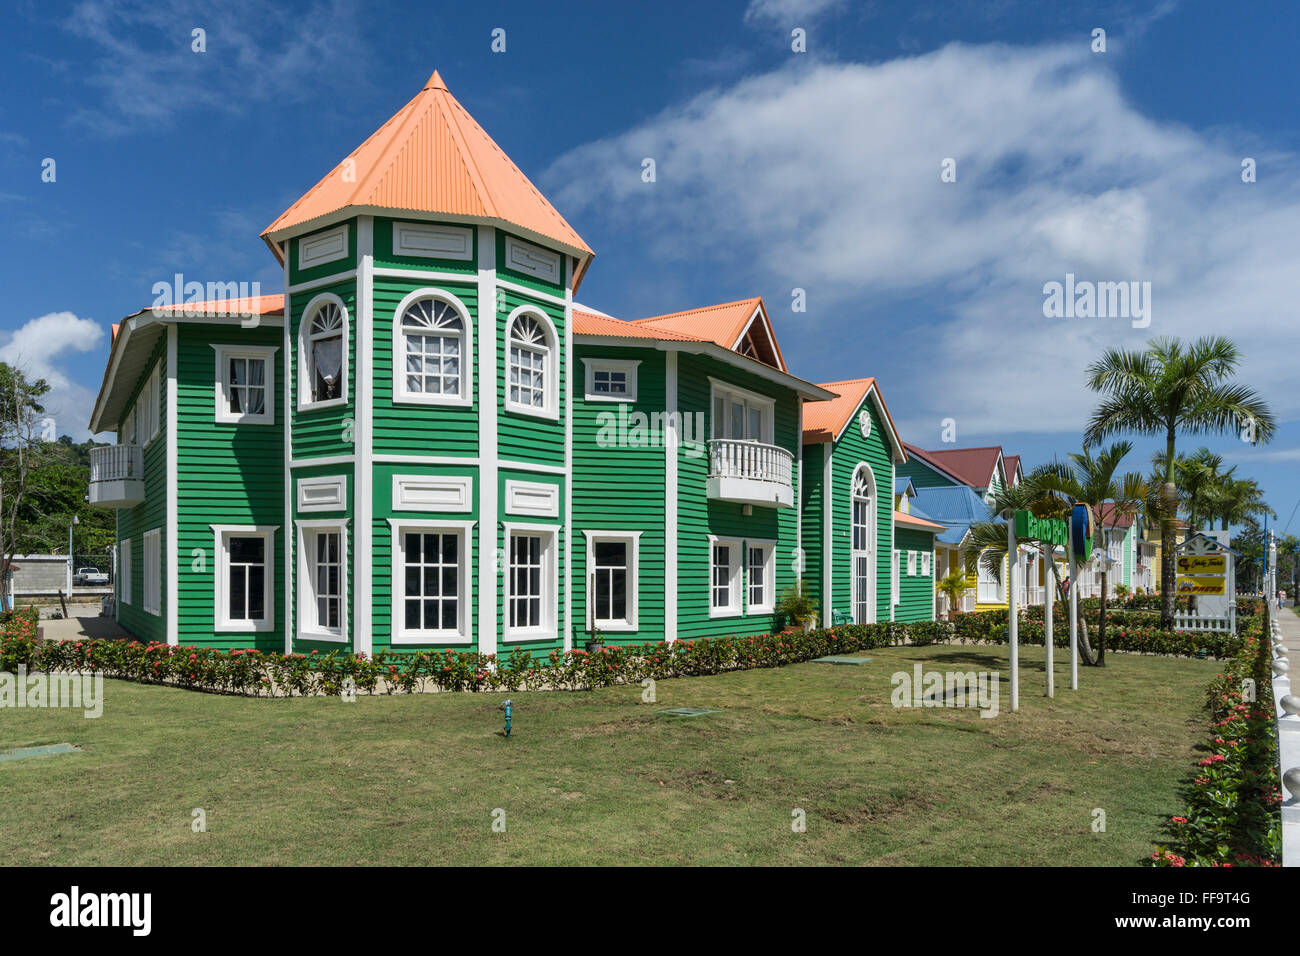 Wooden houses painted in Carribean colors, Samana,  Dominican Republic - Stock Image